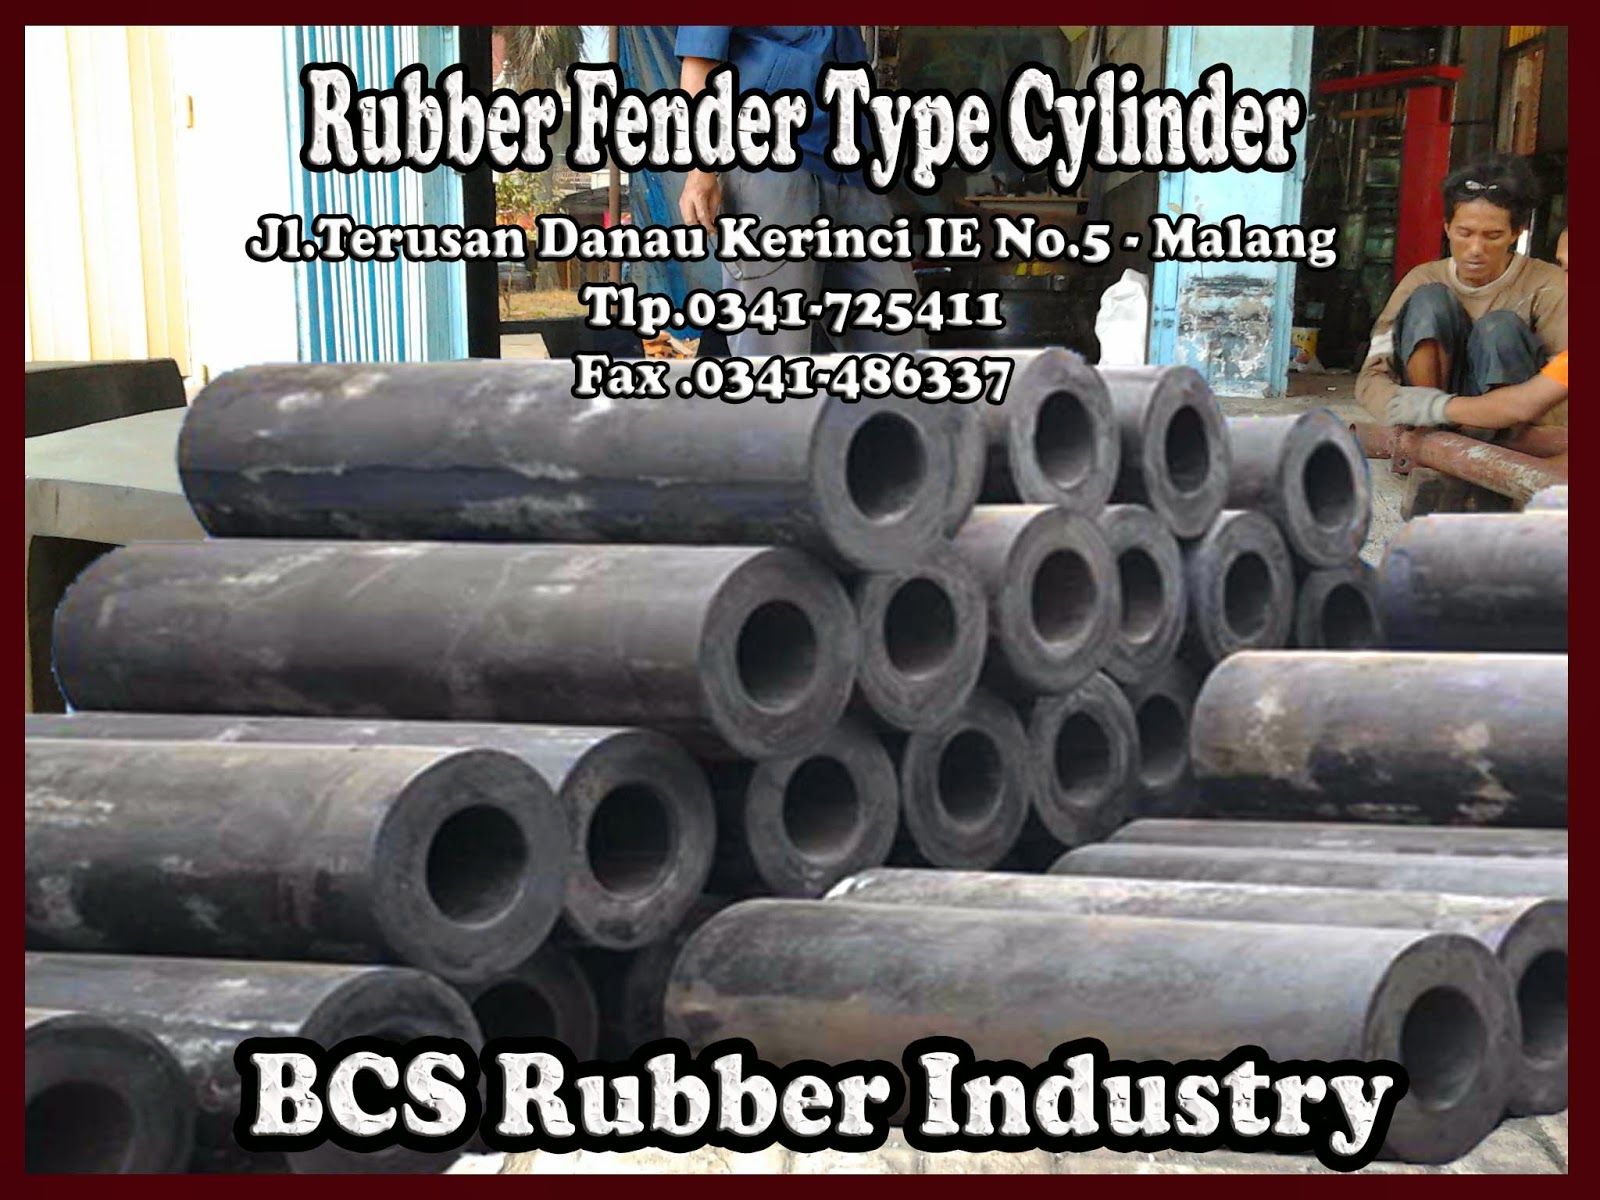 Gallery Product Rubber Fender Cylinder - BCS Rubber Industry